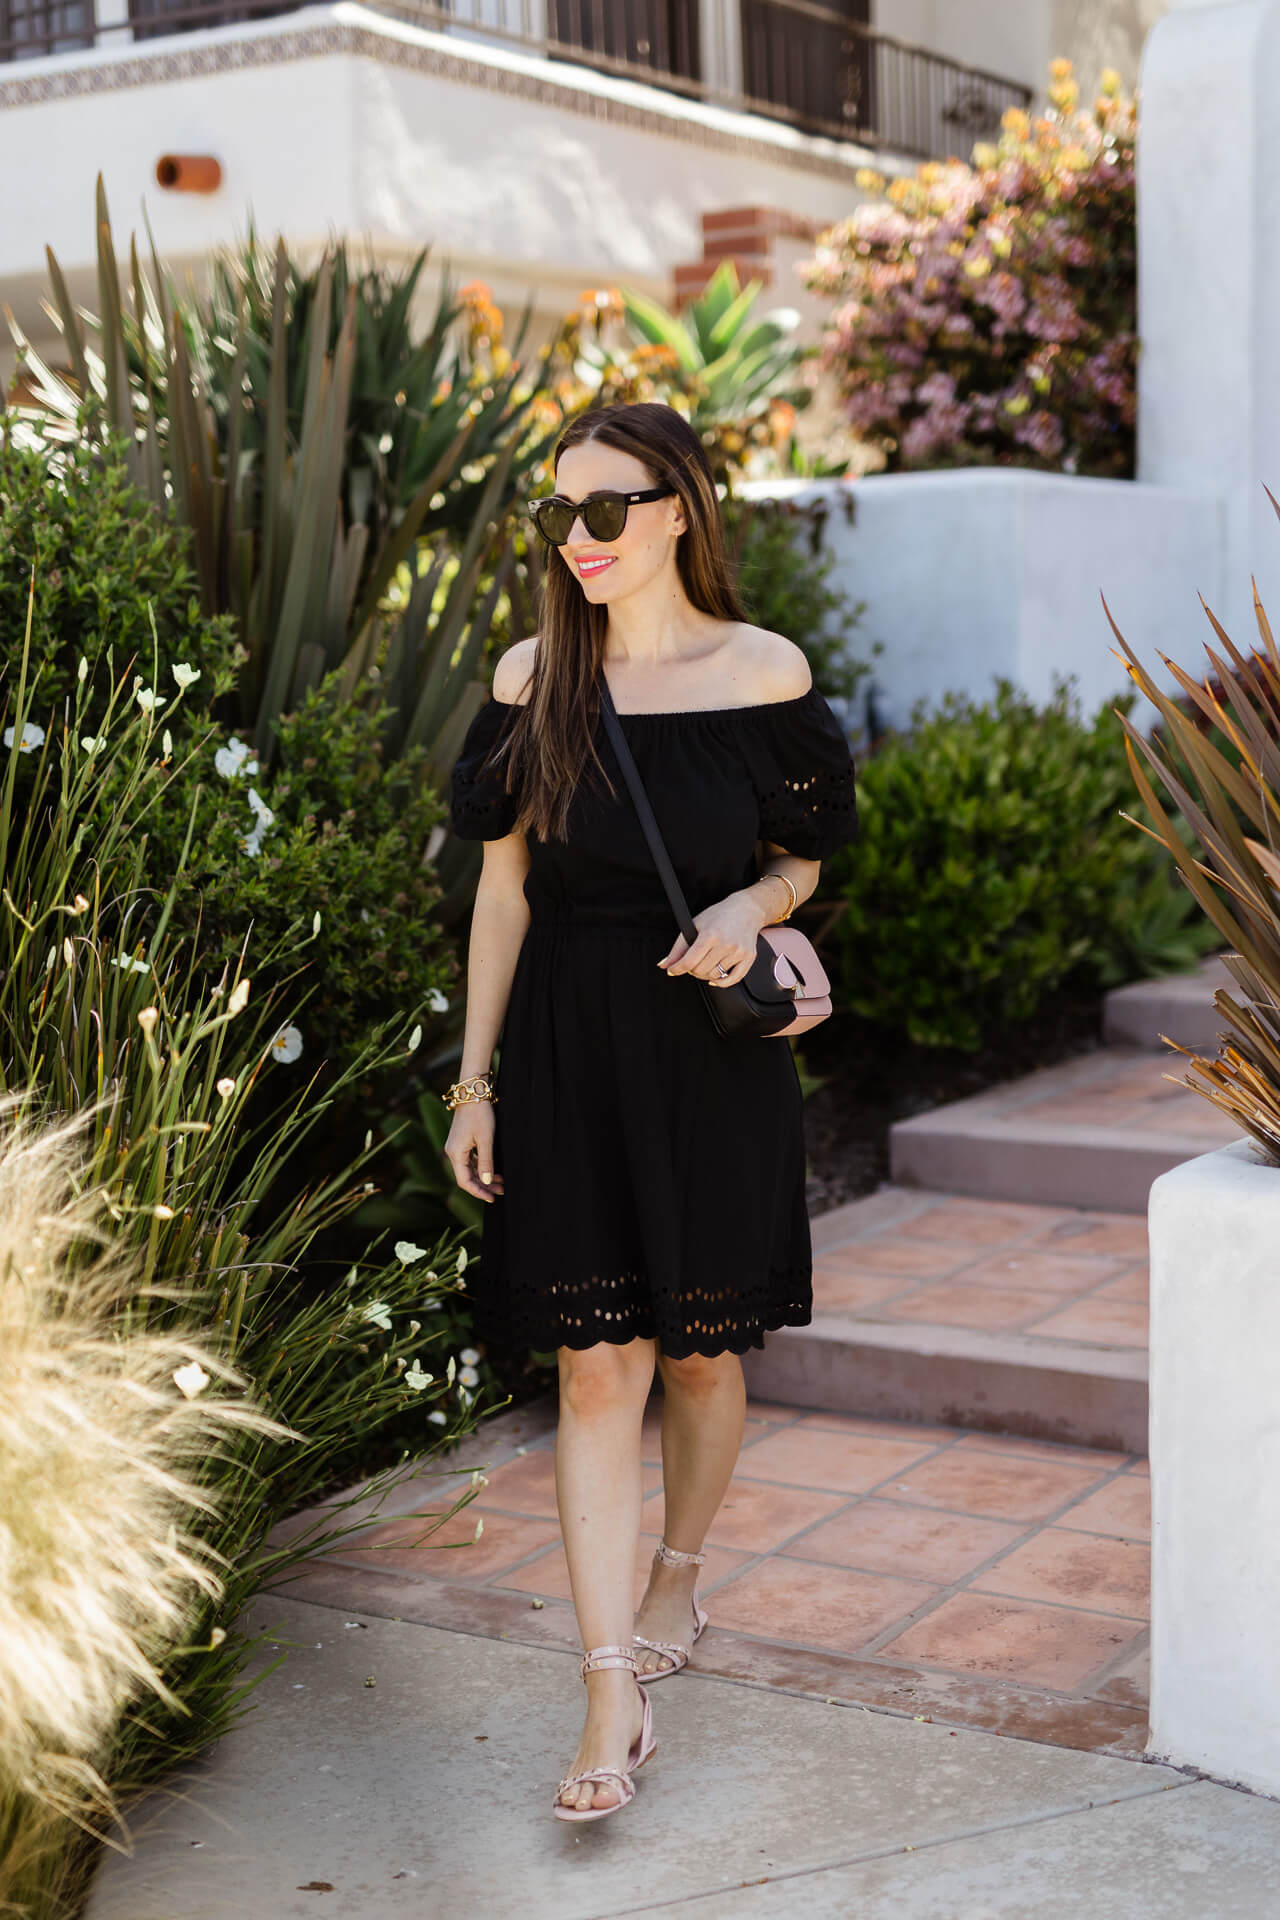 951ae9cbc54 Summer Travel Styles You Should Always Pack | M Loves M